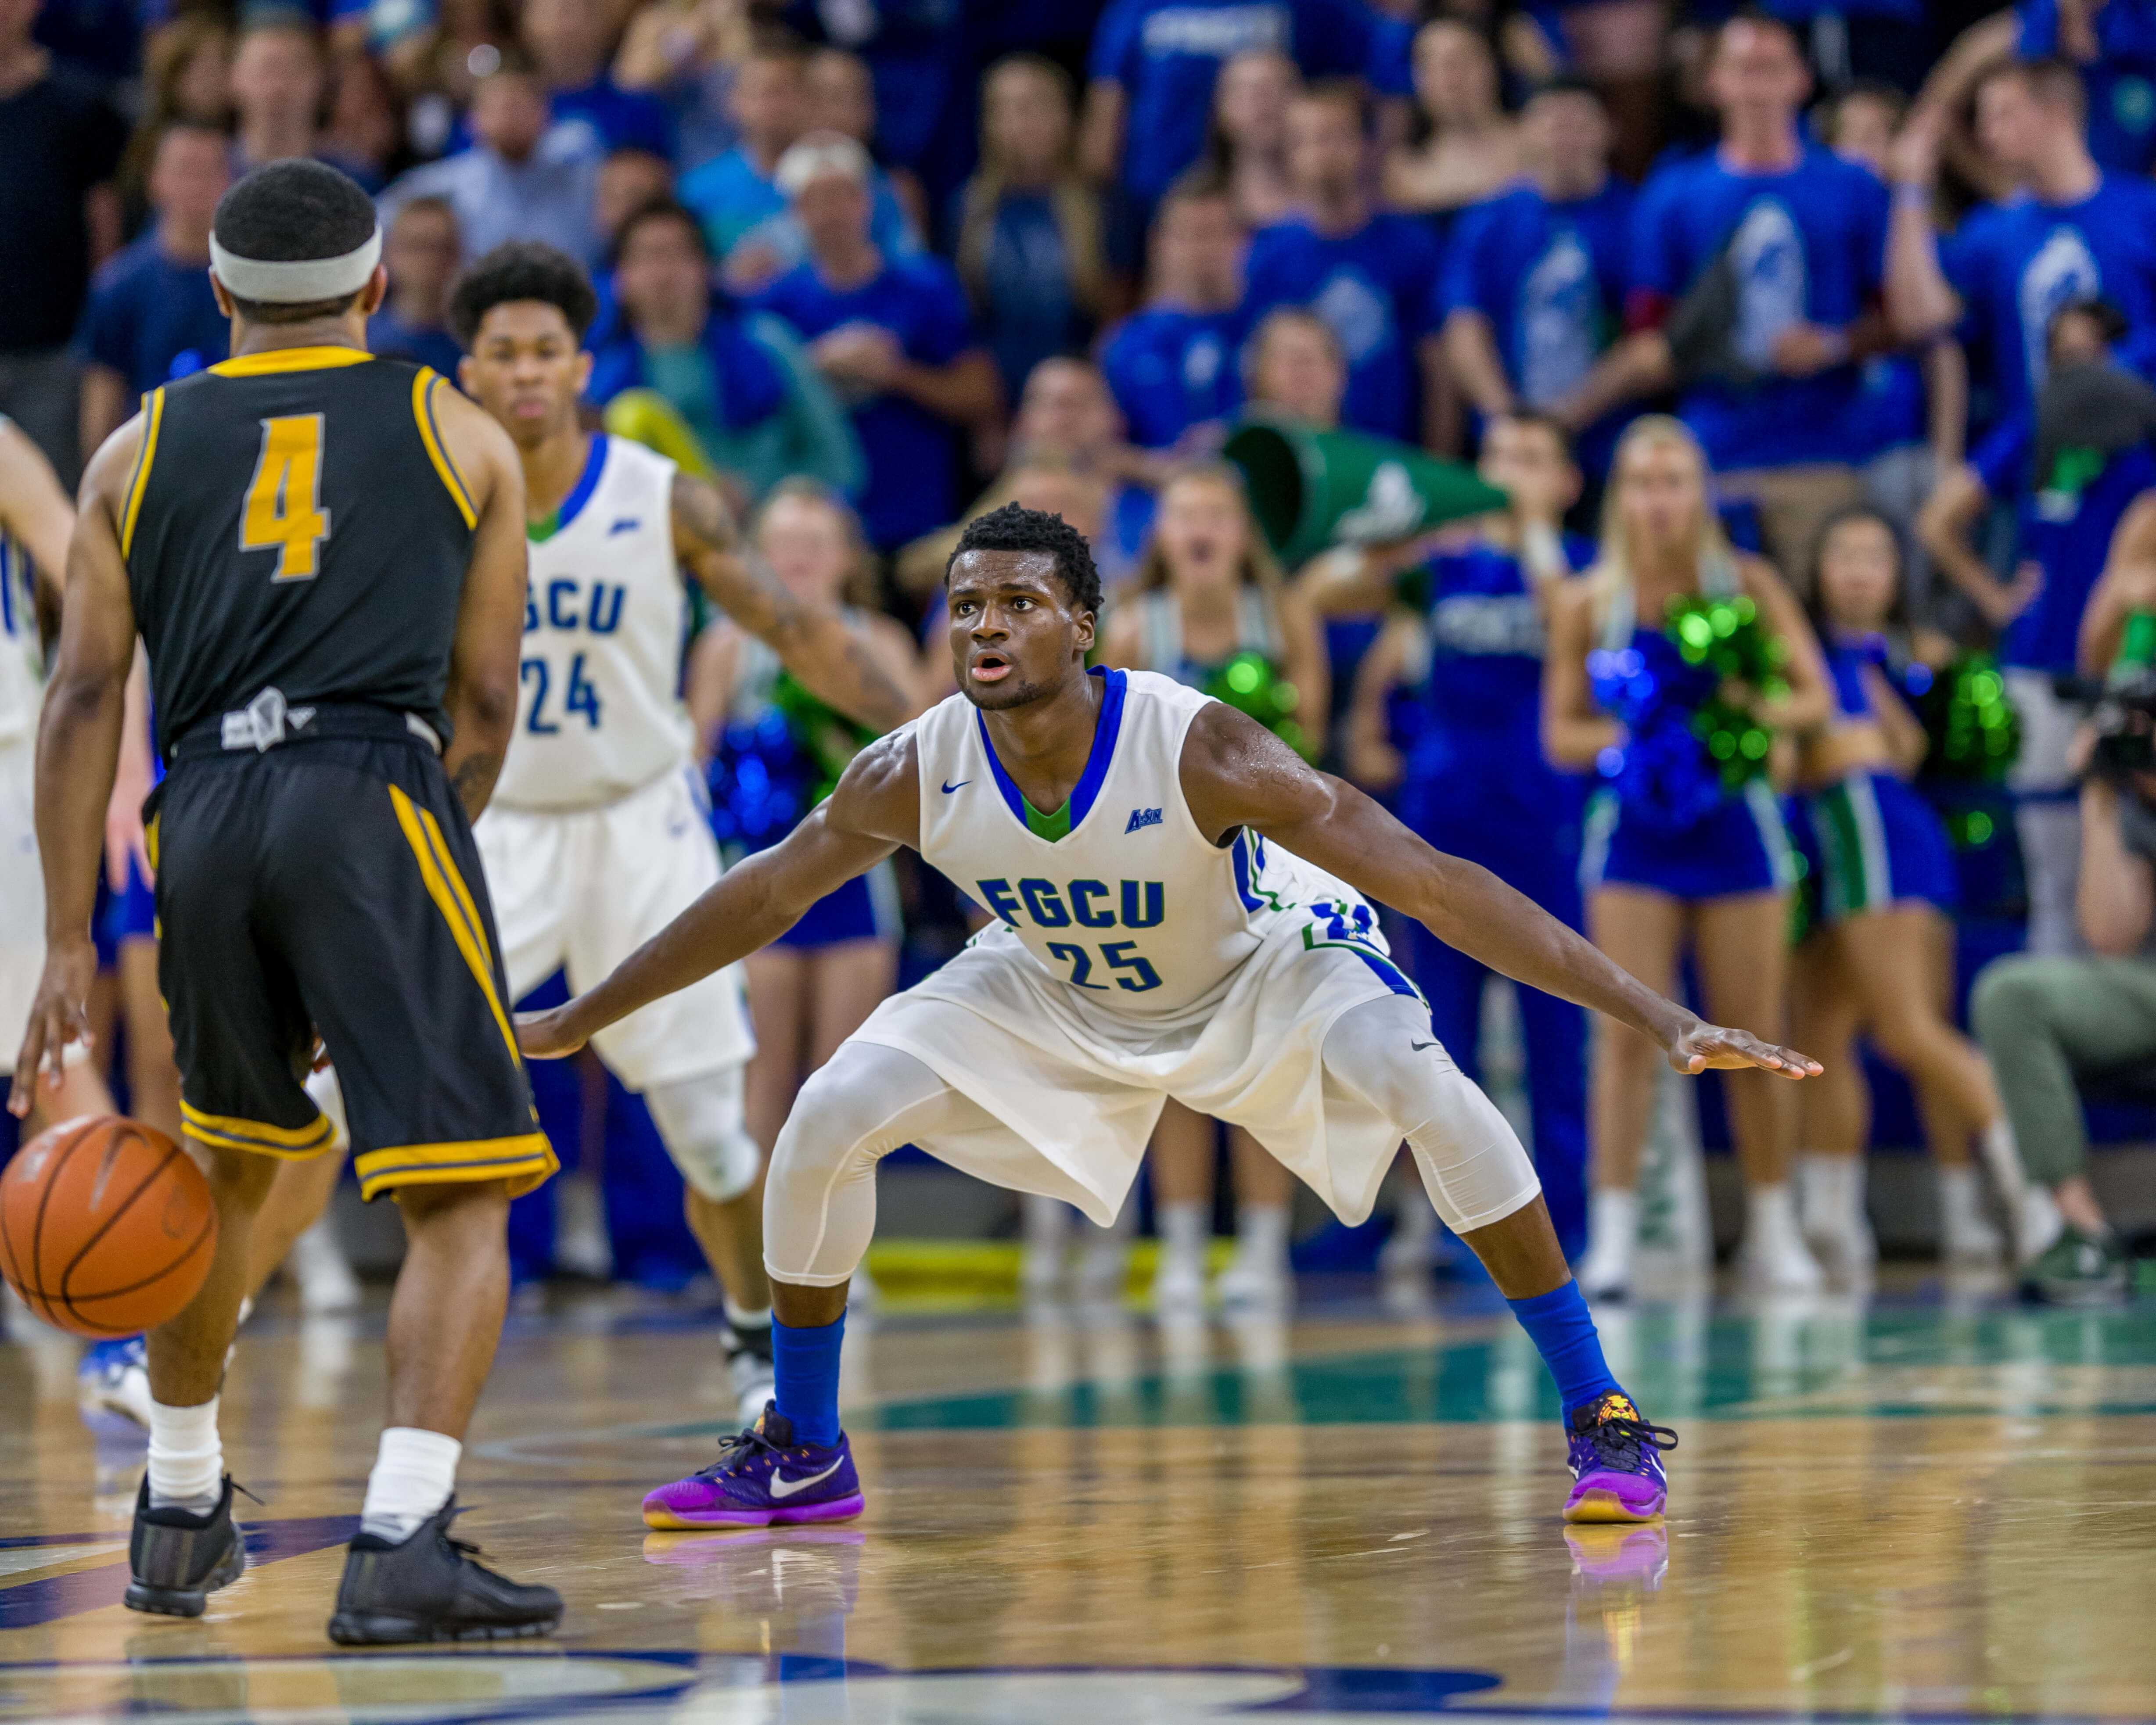 FGCU Eagles claim dramatic victory over Owls